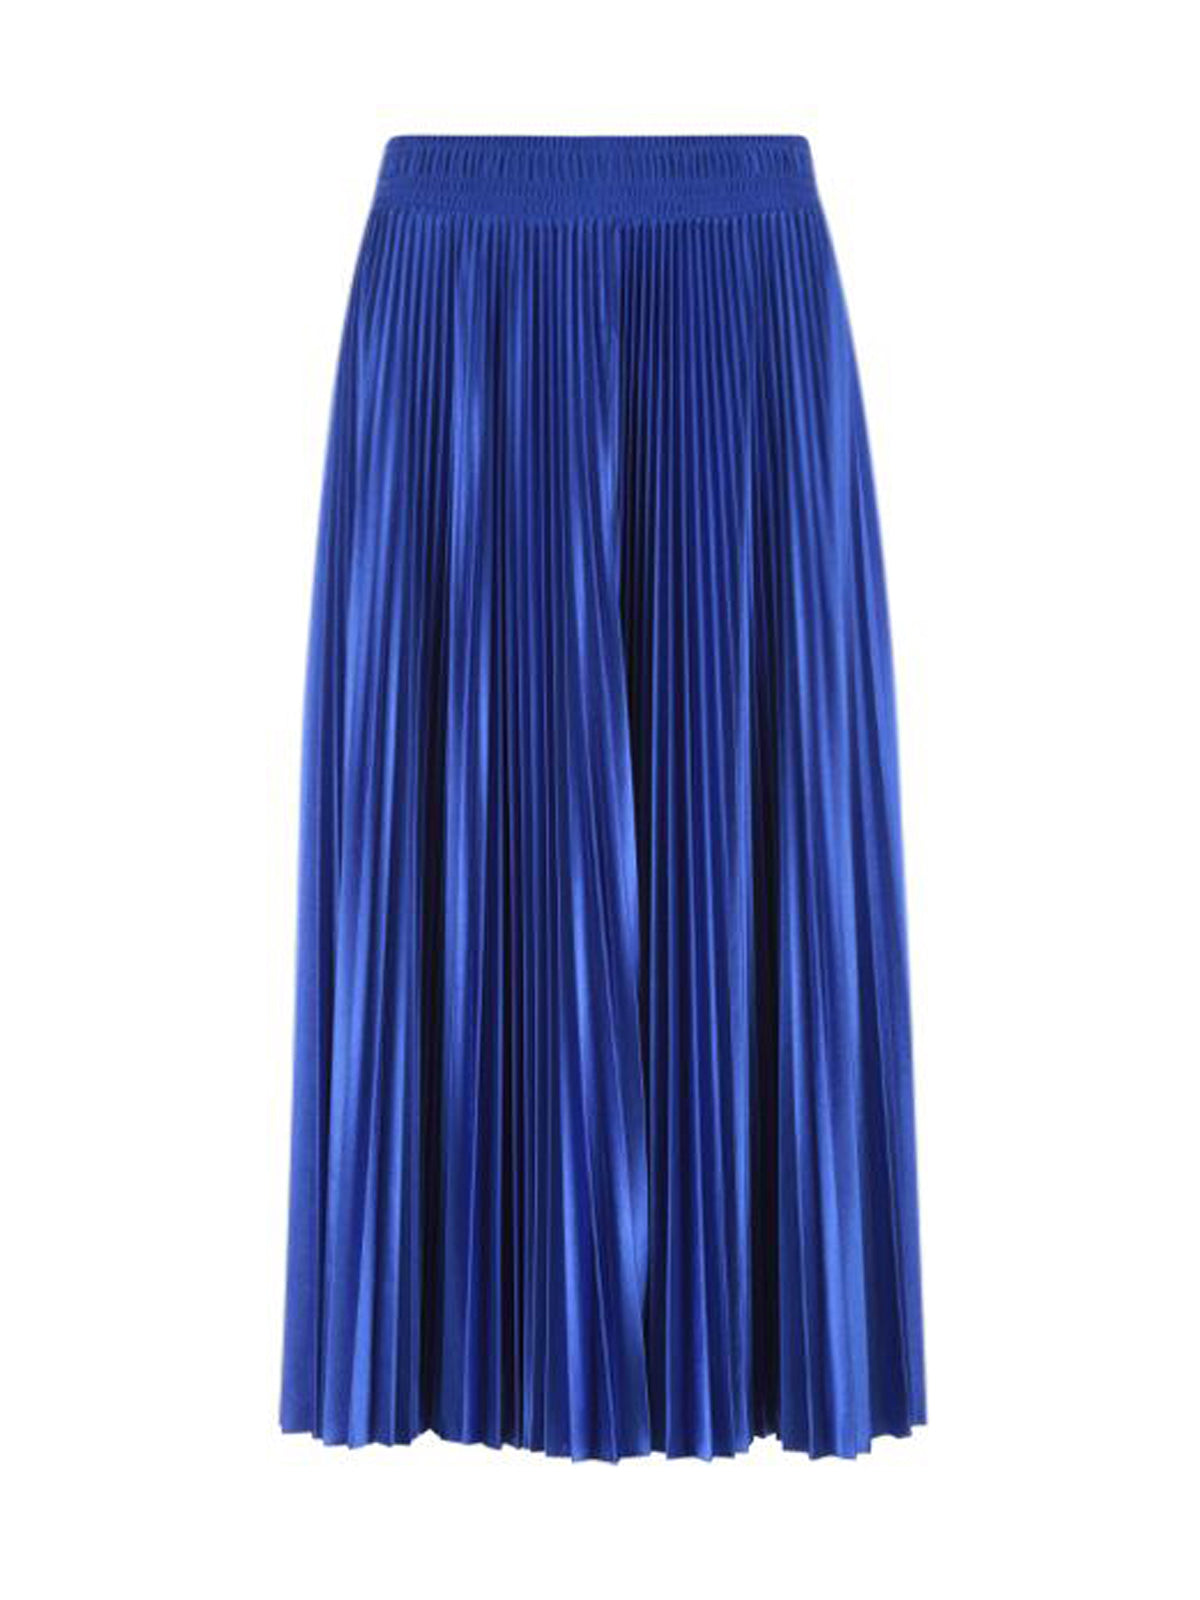 SHINY TECHNICAL JERSEY PLEATED SKIRT